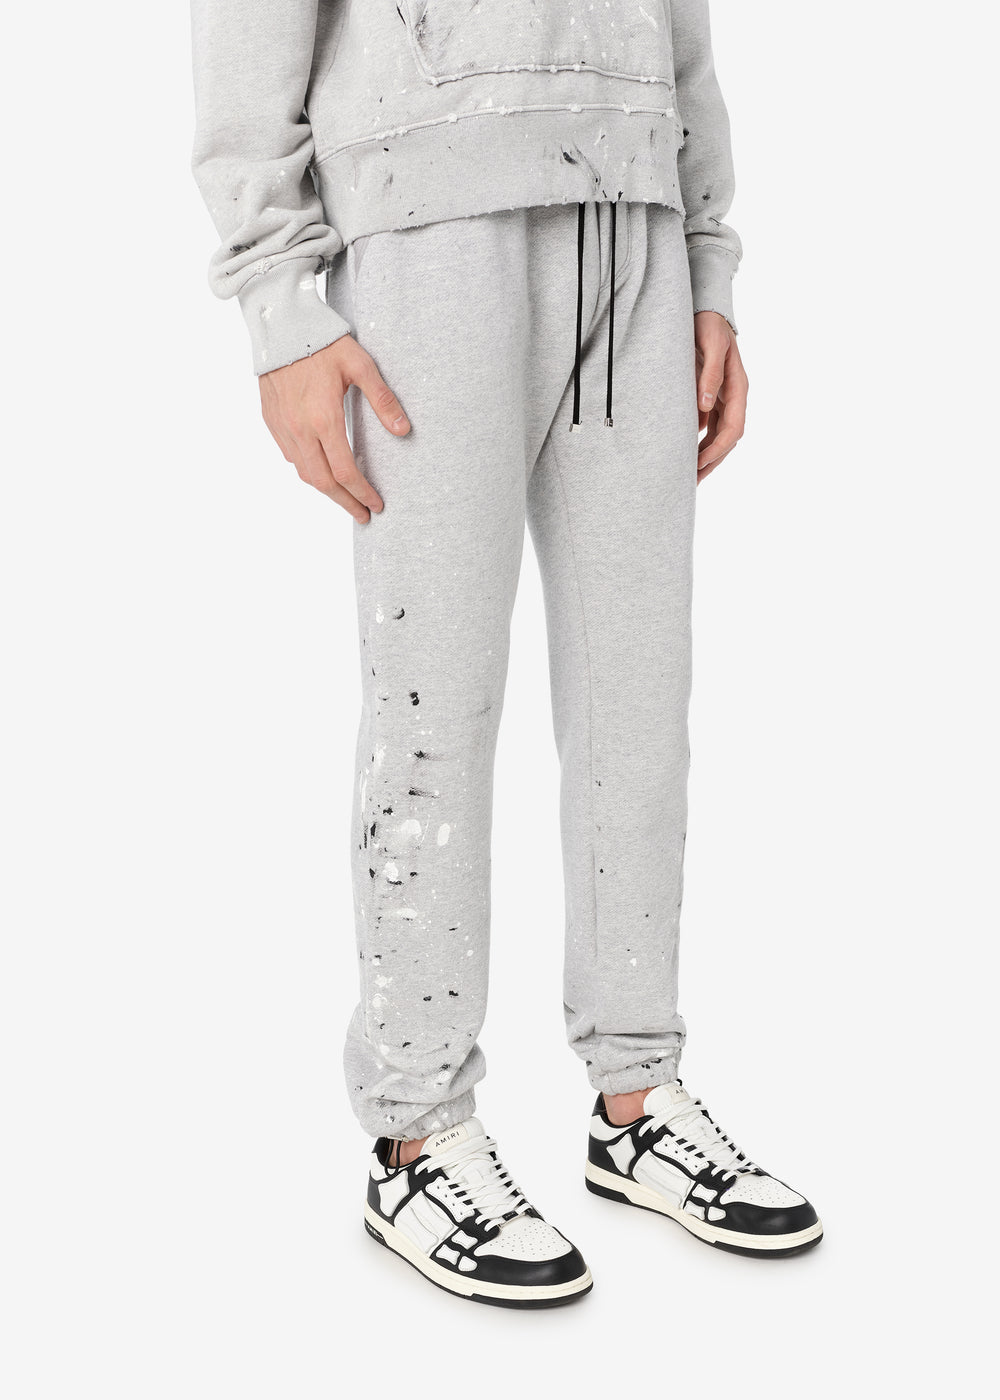 ARMY PAINT SWEATPANTS - HEATHER GREY